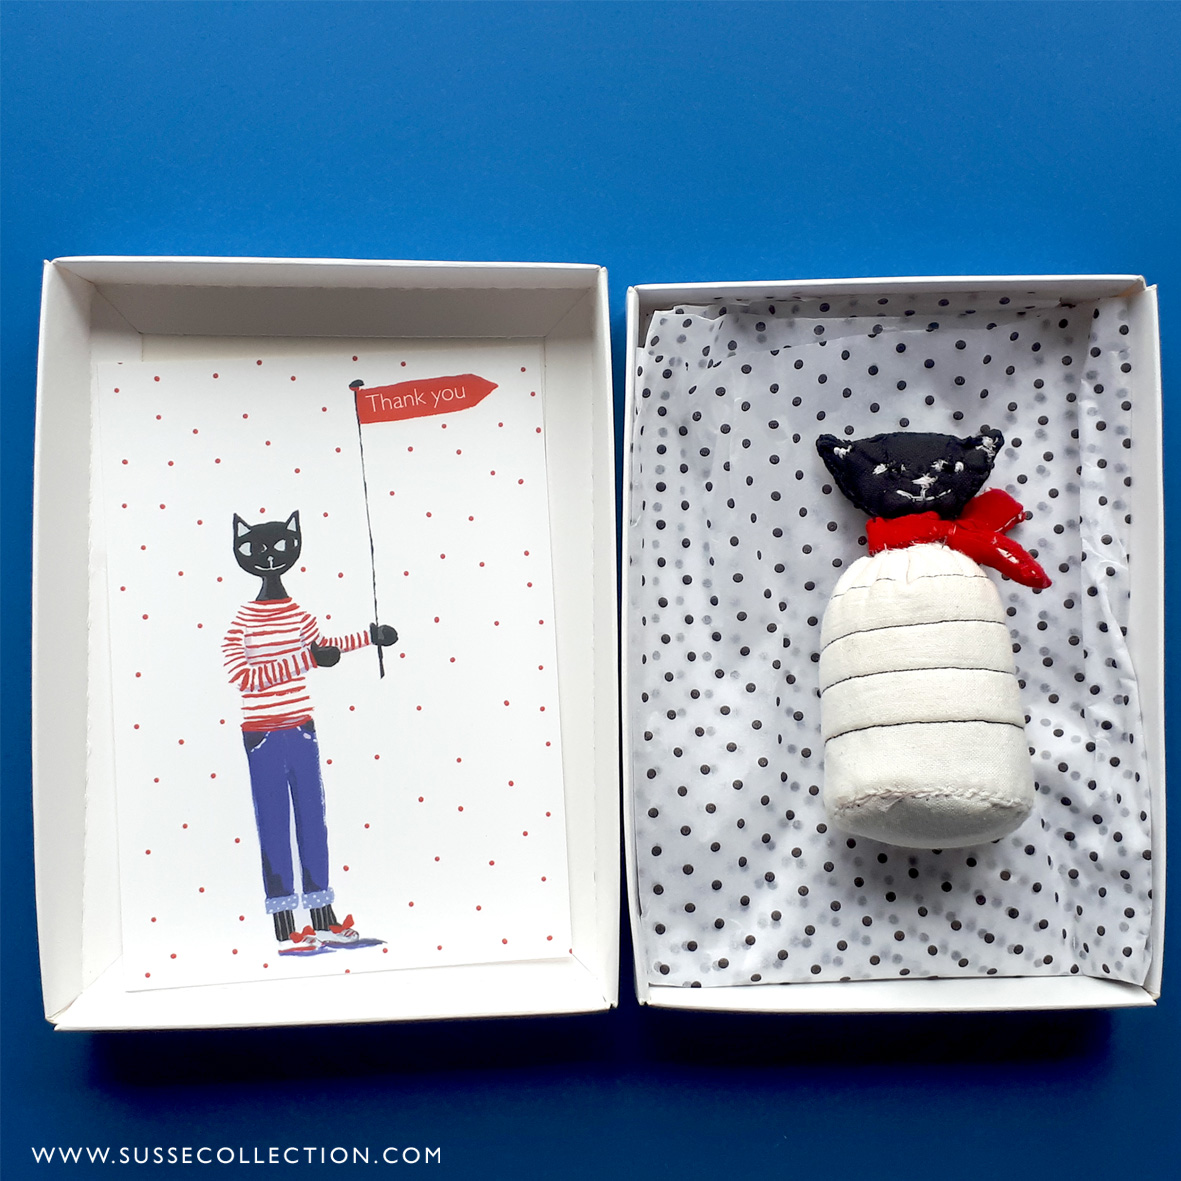 Susse Collection_Pin cushion mail .jpg